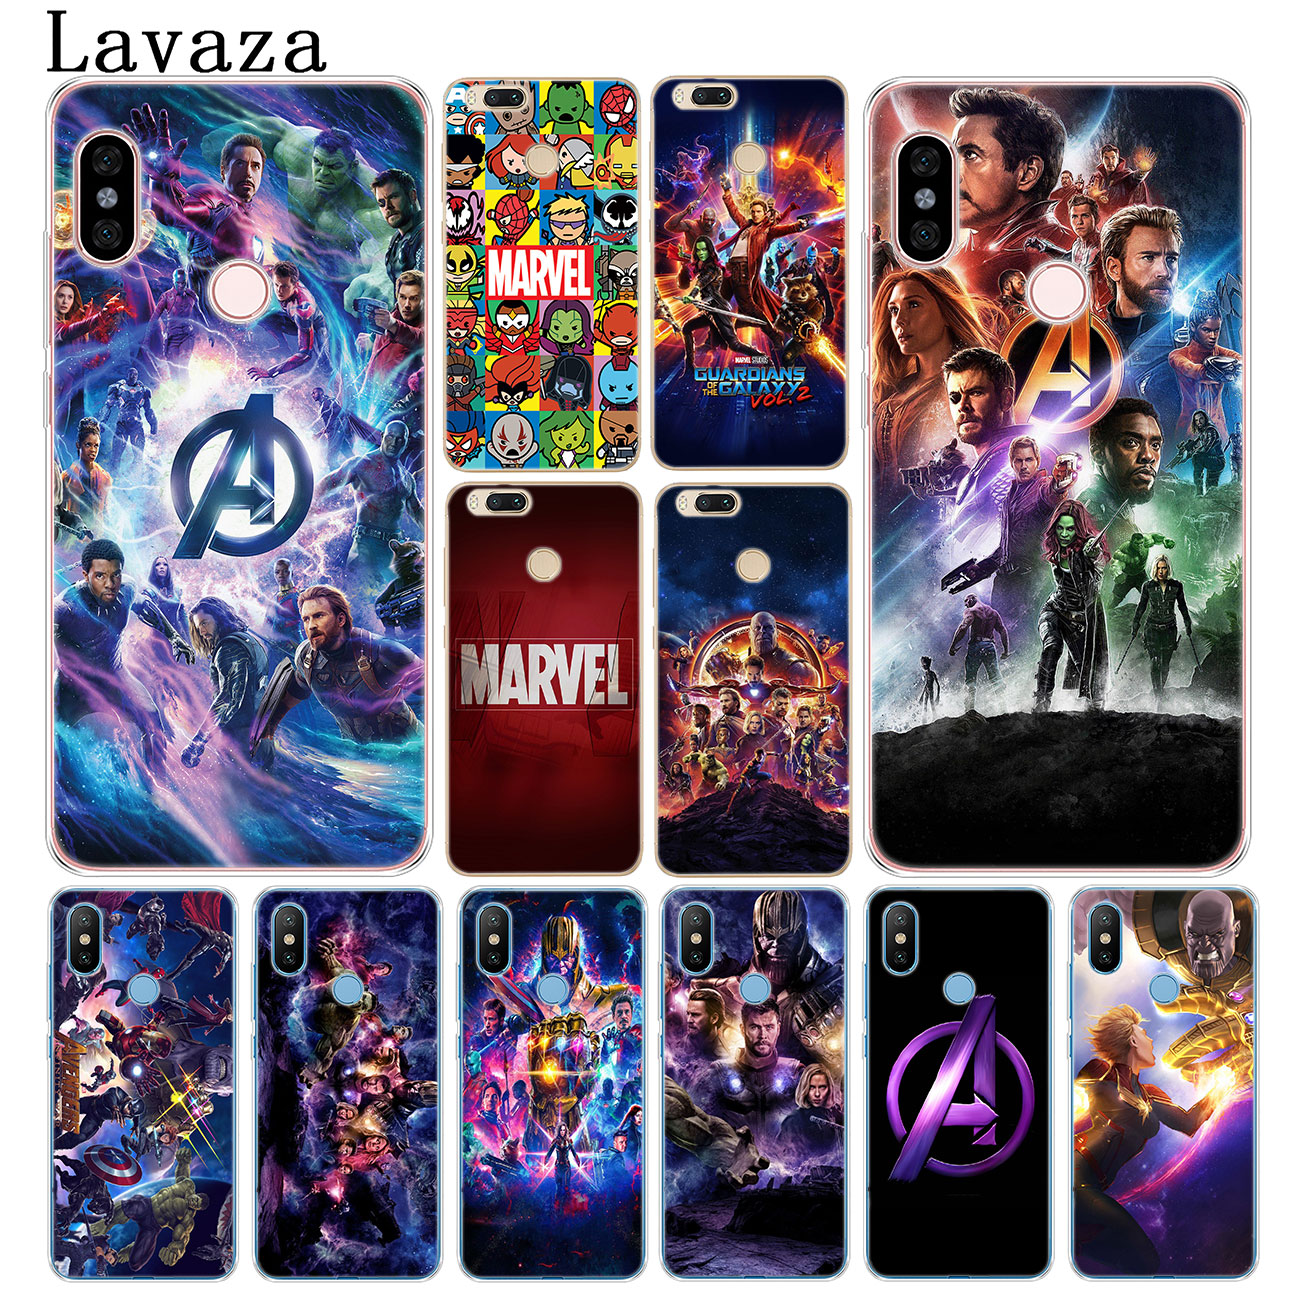 Lavaza Avengers Endgame <font><b>Marvel</b></font> Captain America Phone <font><b>Case</b></font> for <font><b>Xiaomi</b></font> <font><b>Redmi</b></font> K20 8A 7A 5A 6A <font><b>Note</b></font> 8 7 5 6 Pro <font><b>4</b></font> 4X Cover image